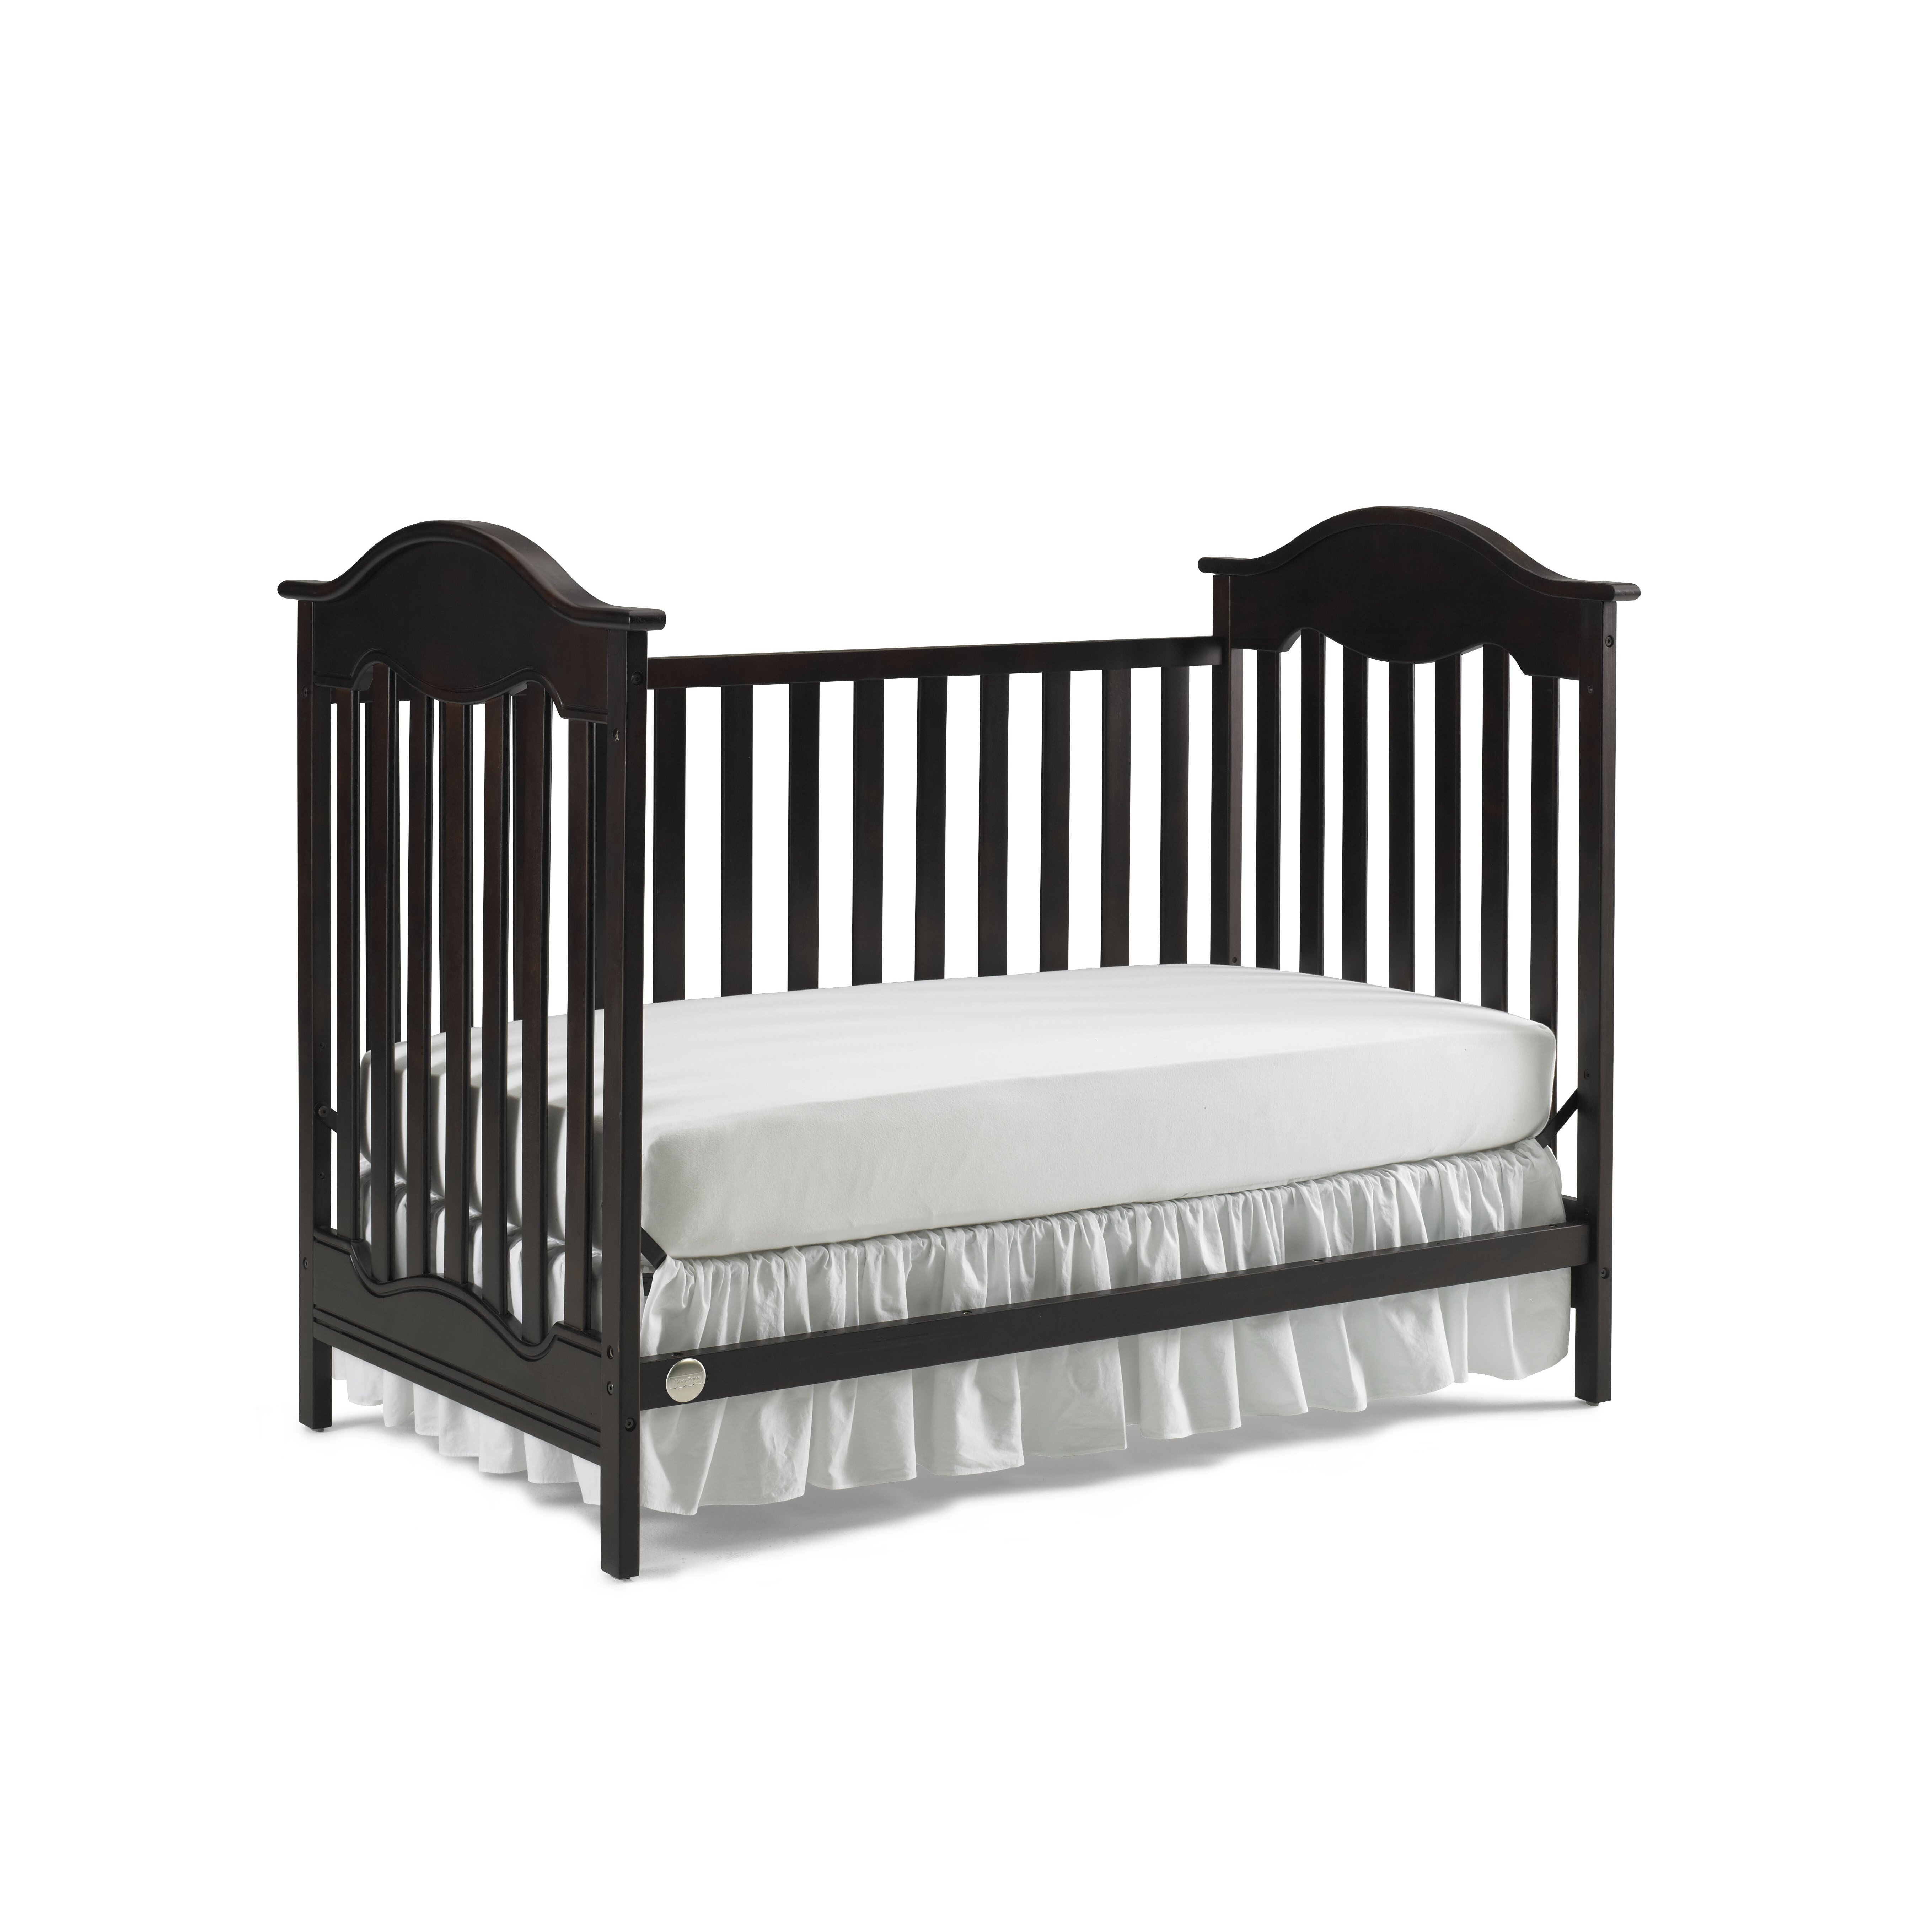 Crib for sale charleston sc - Fisher Price Charlotte Traditional Crib